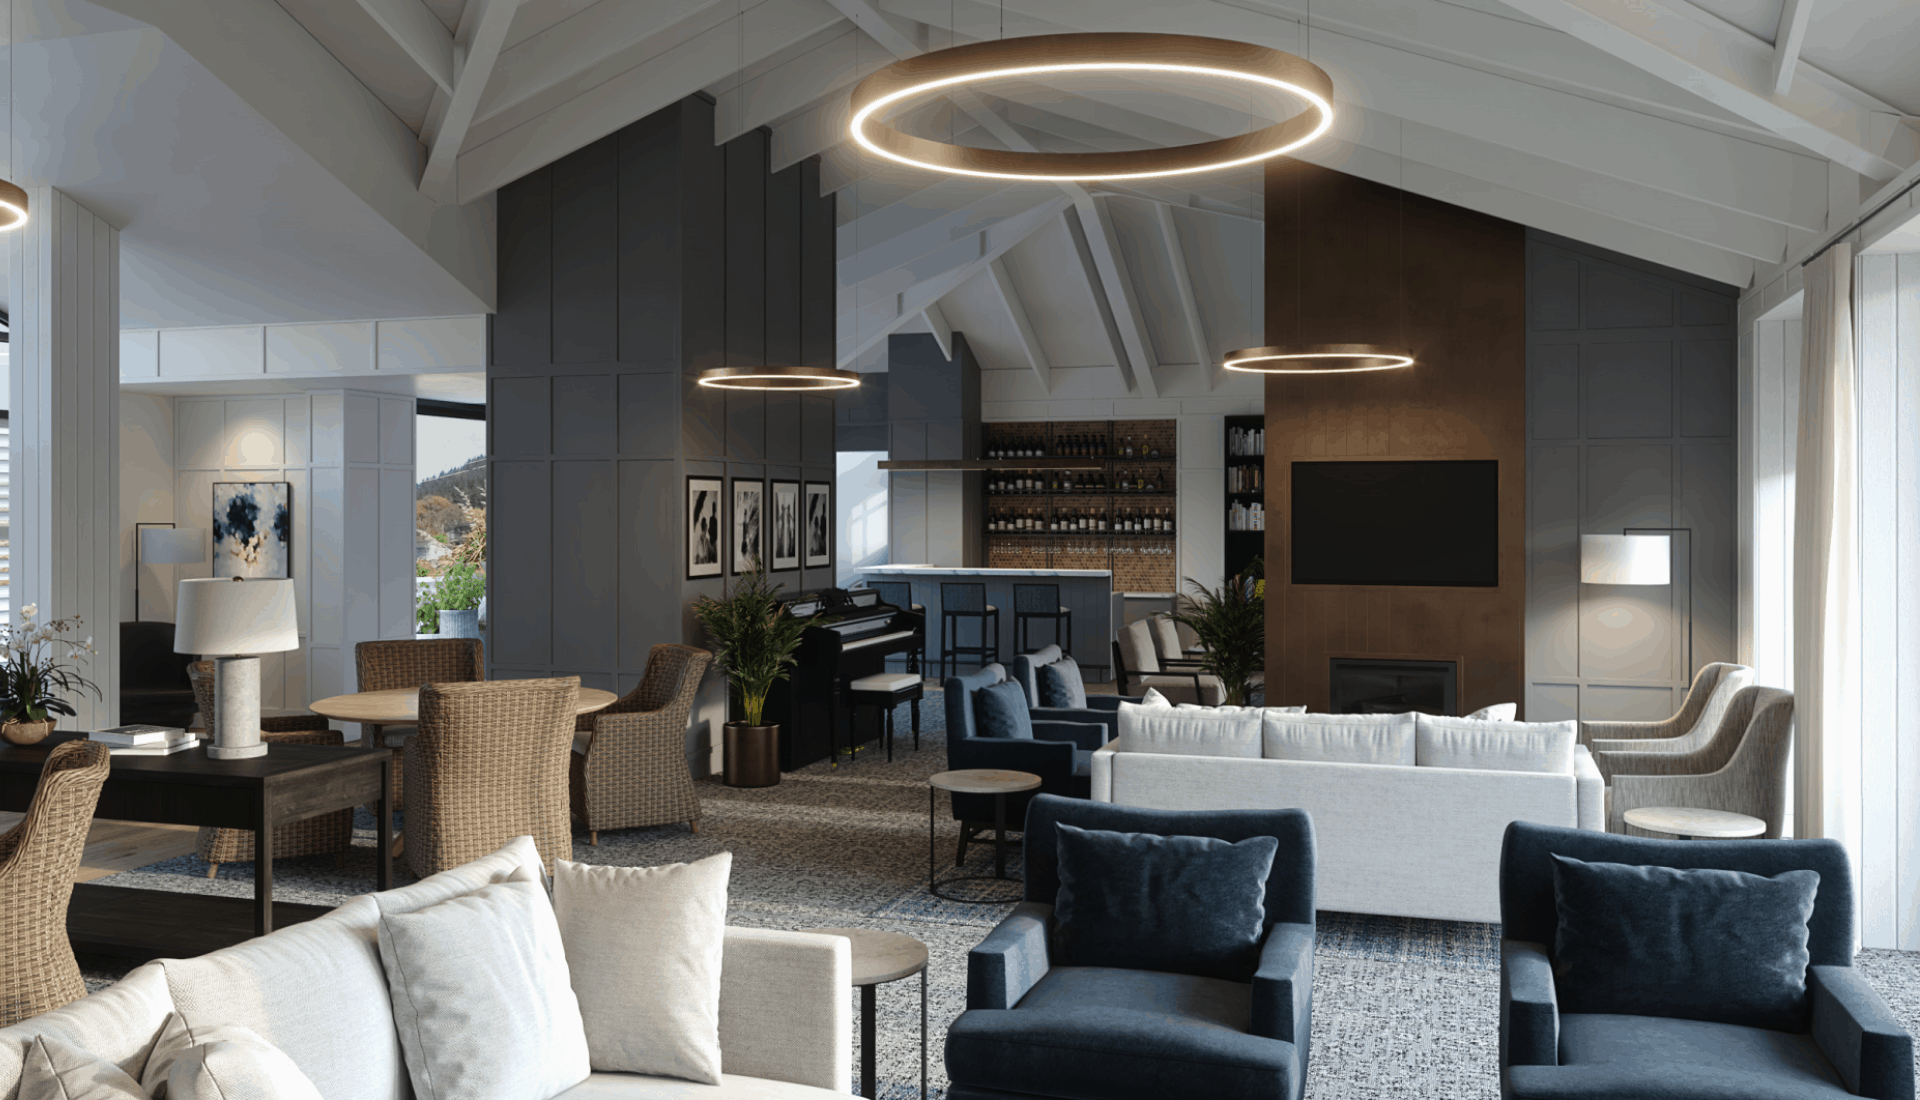 Longview Apartments retirement village aged care facility in Wellington shared lounge design with tables and chairs and sofas